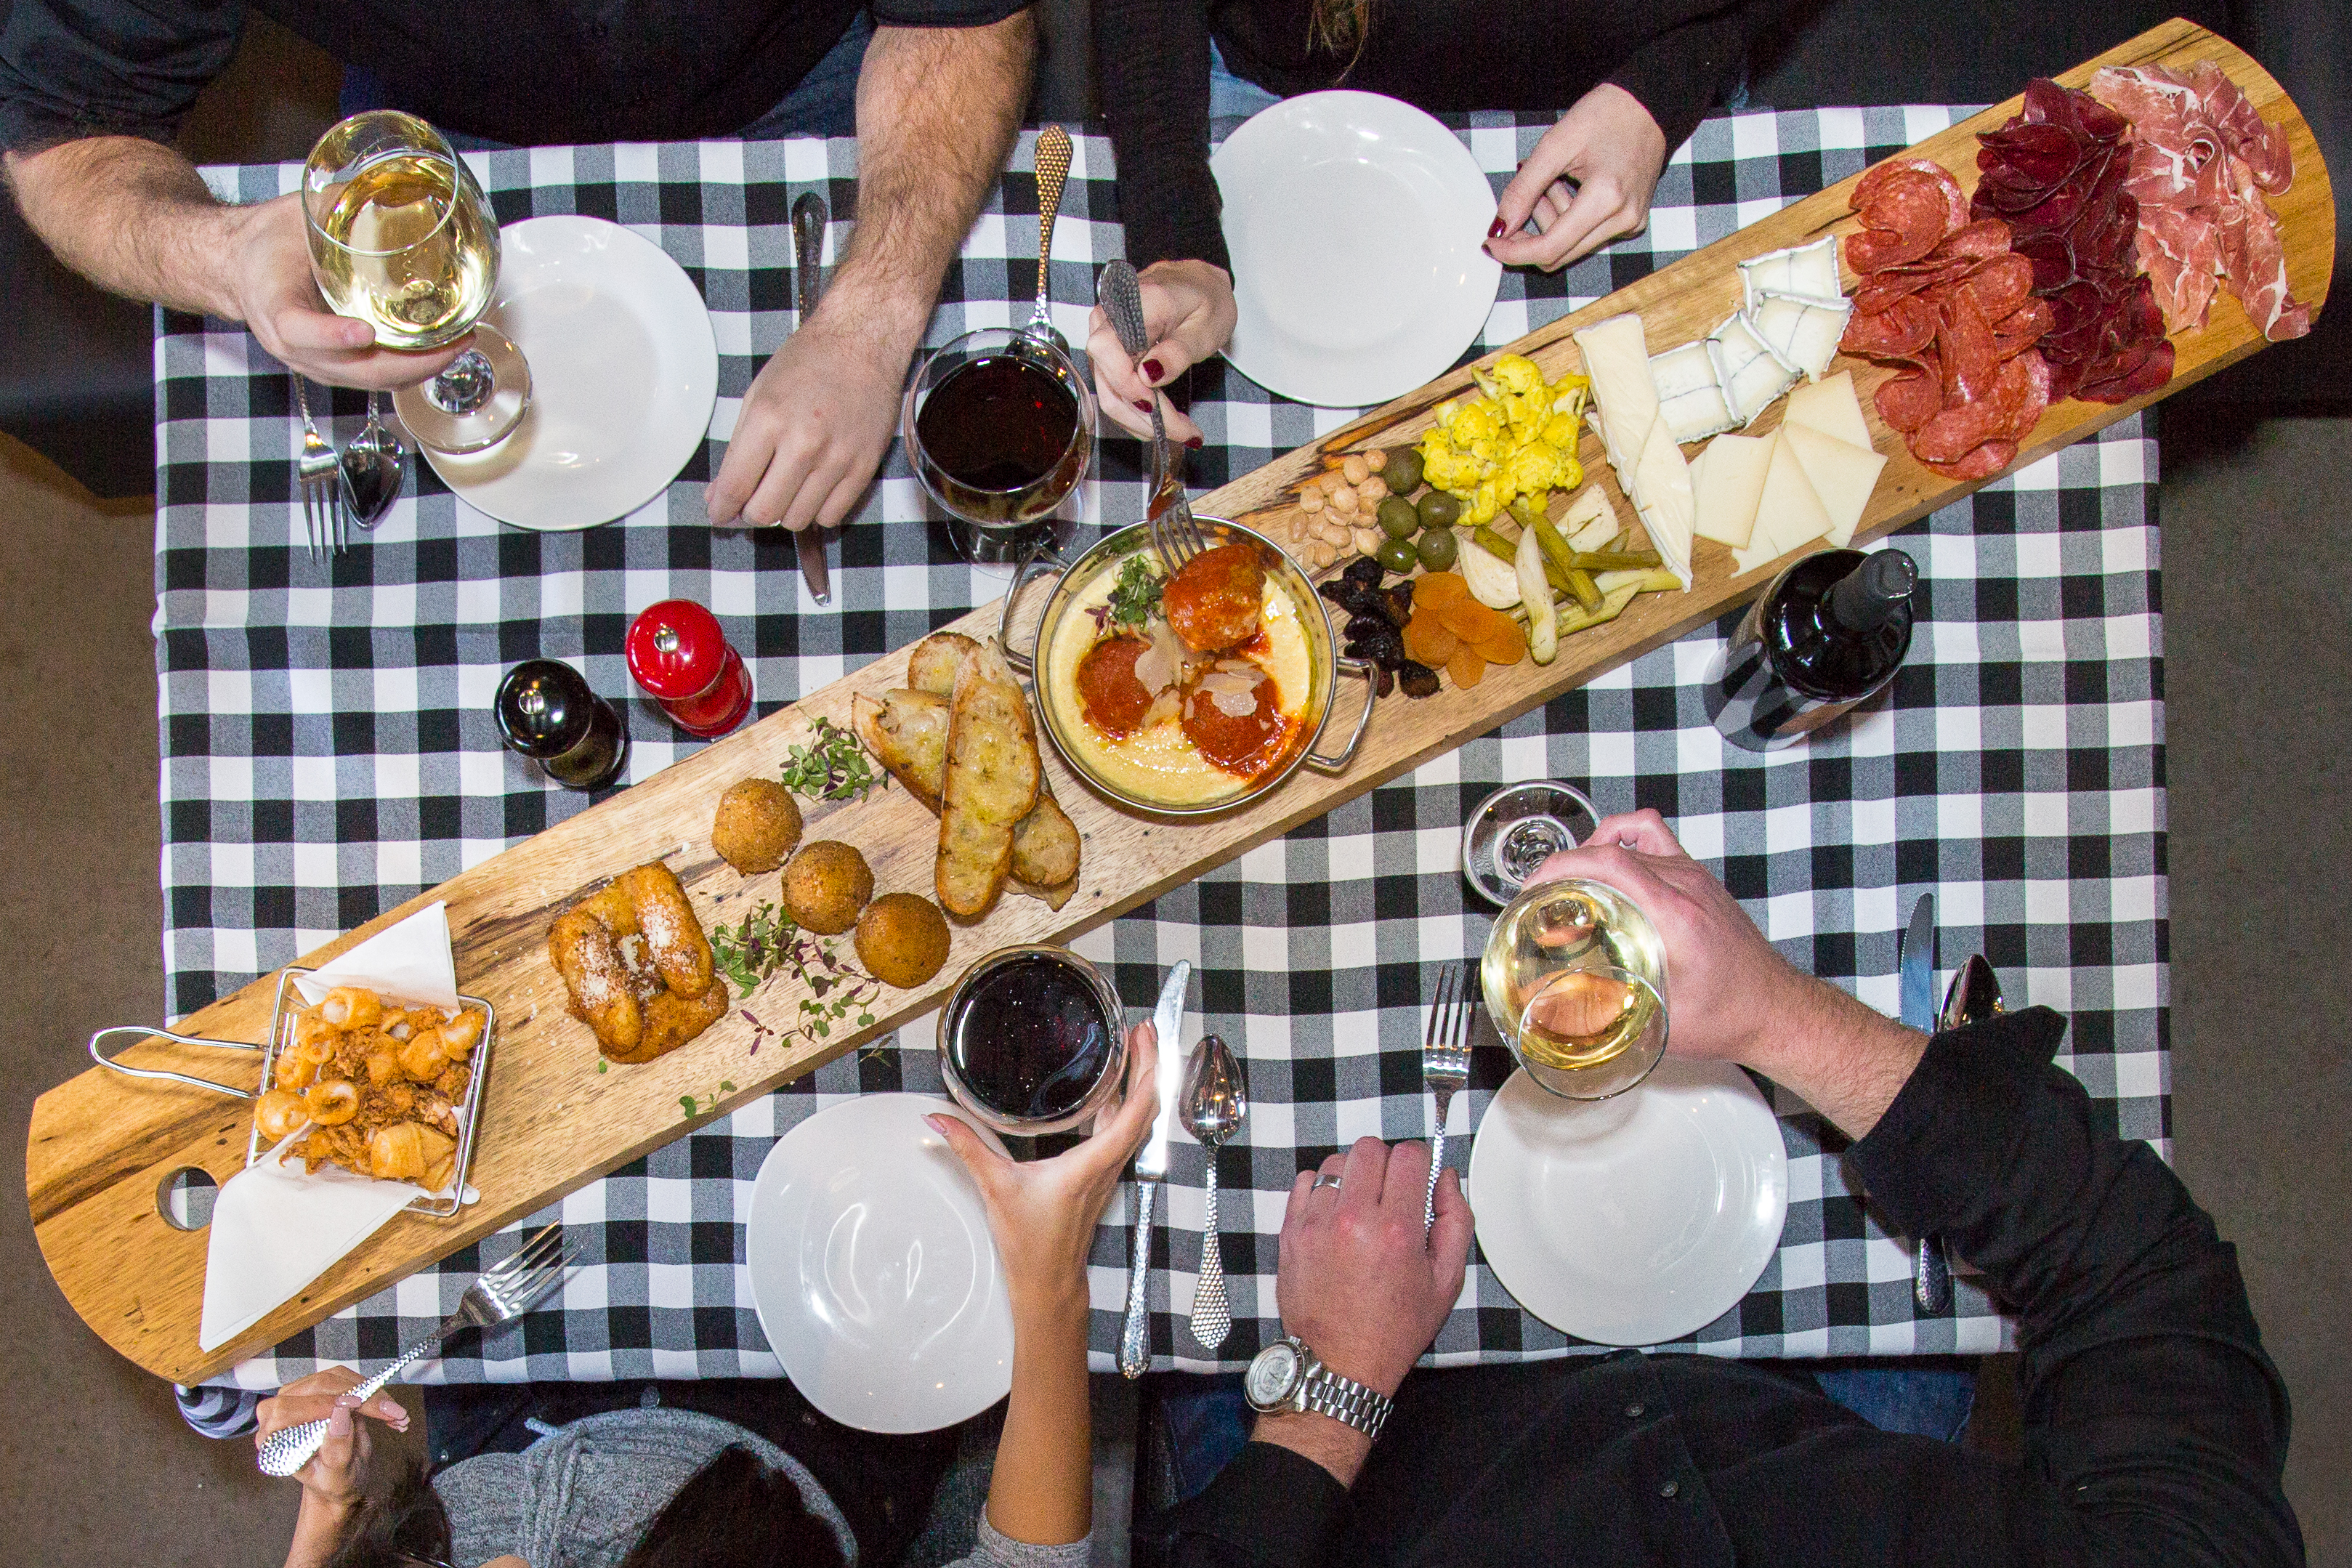 A table with a black and white checkered tablecloth is shown from above surrounded by hands holding wine glasses. A long wooden board with charcuterie stretches at an angle across the center of the table.